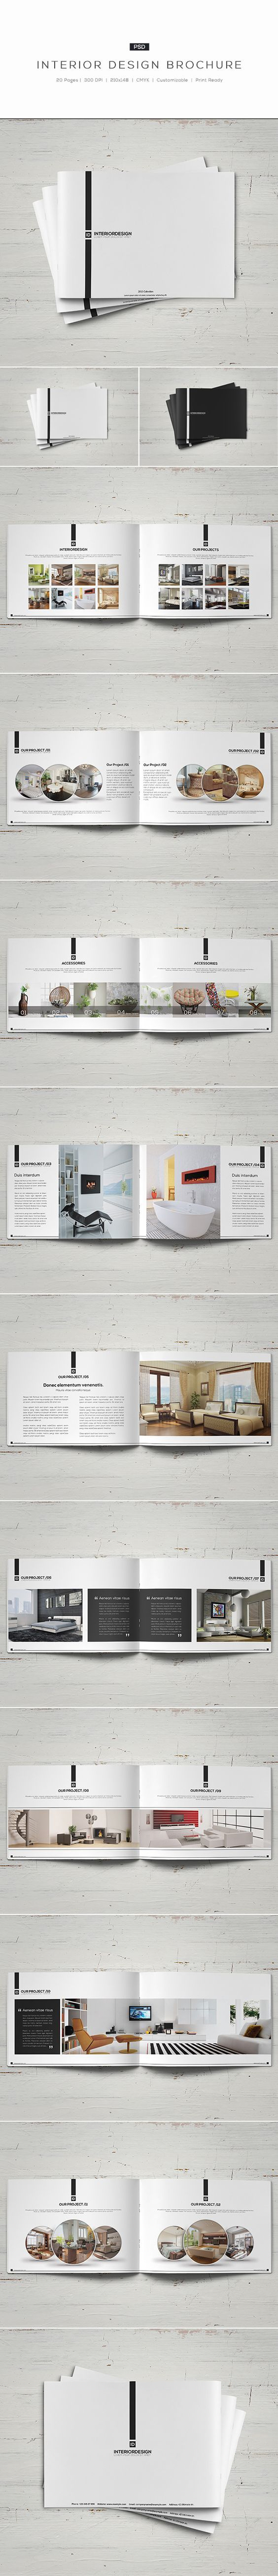 Interior Design Brochure on Behance…